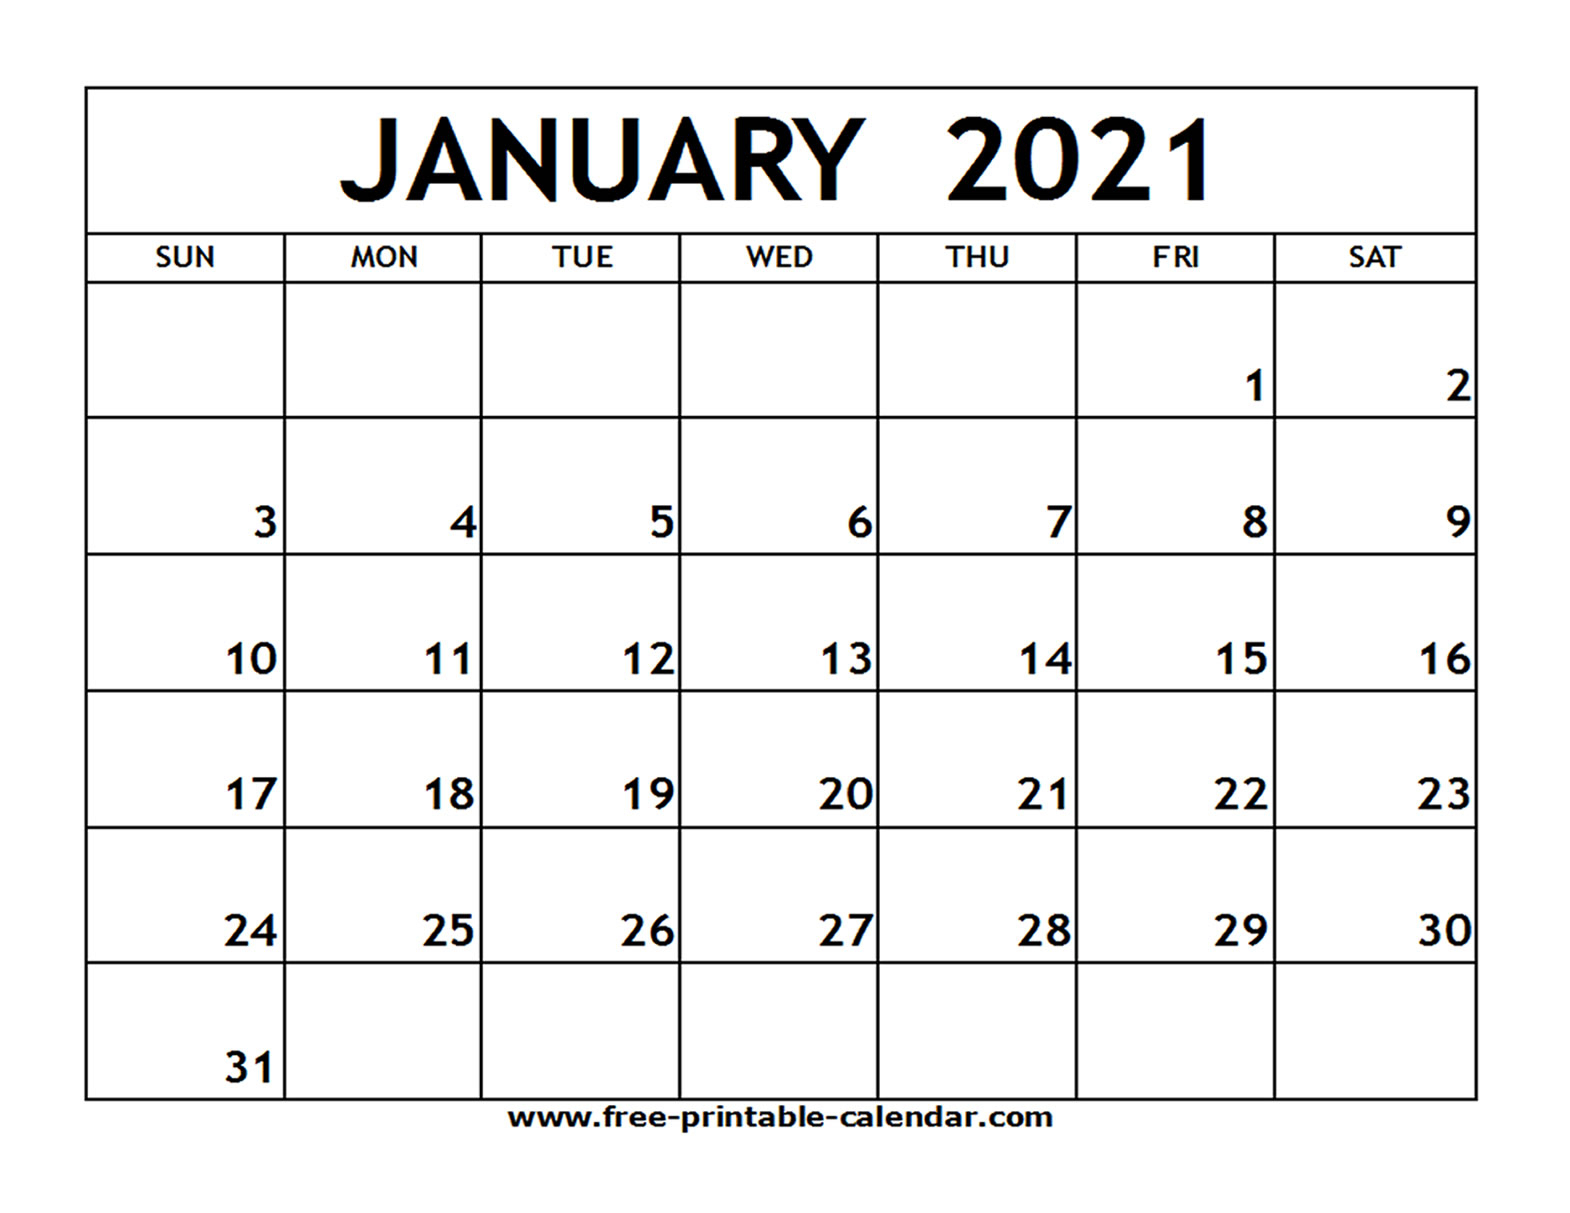 January 2021 Printable Calendar - Free-Printable-Calendar pertaining to 2021 Fill-In Calendar